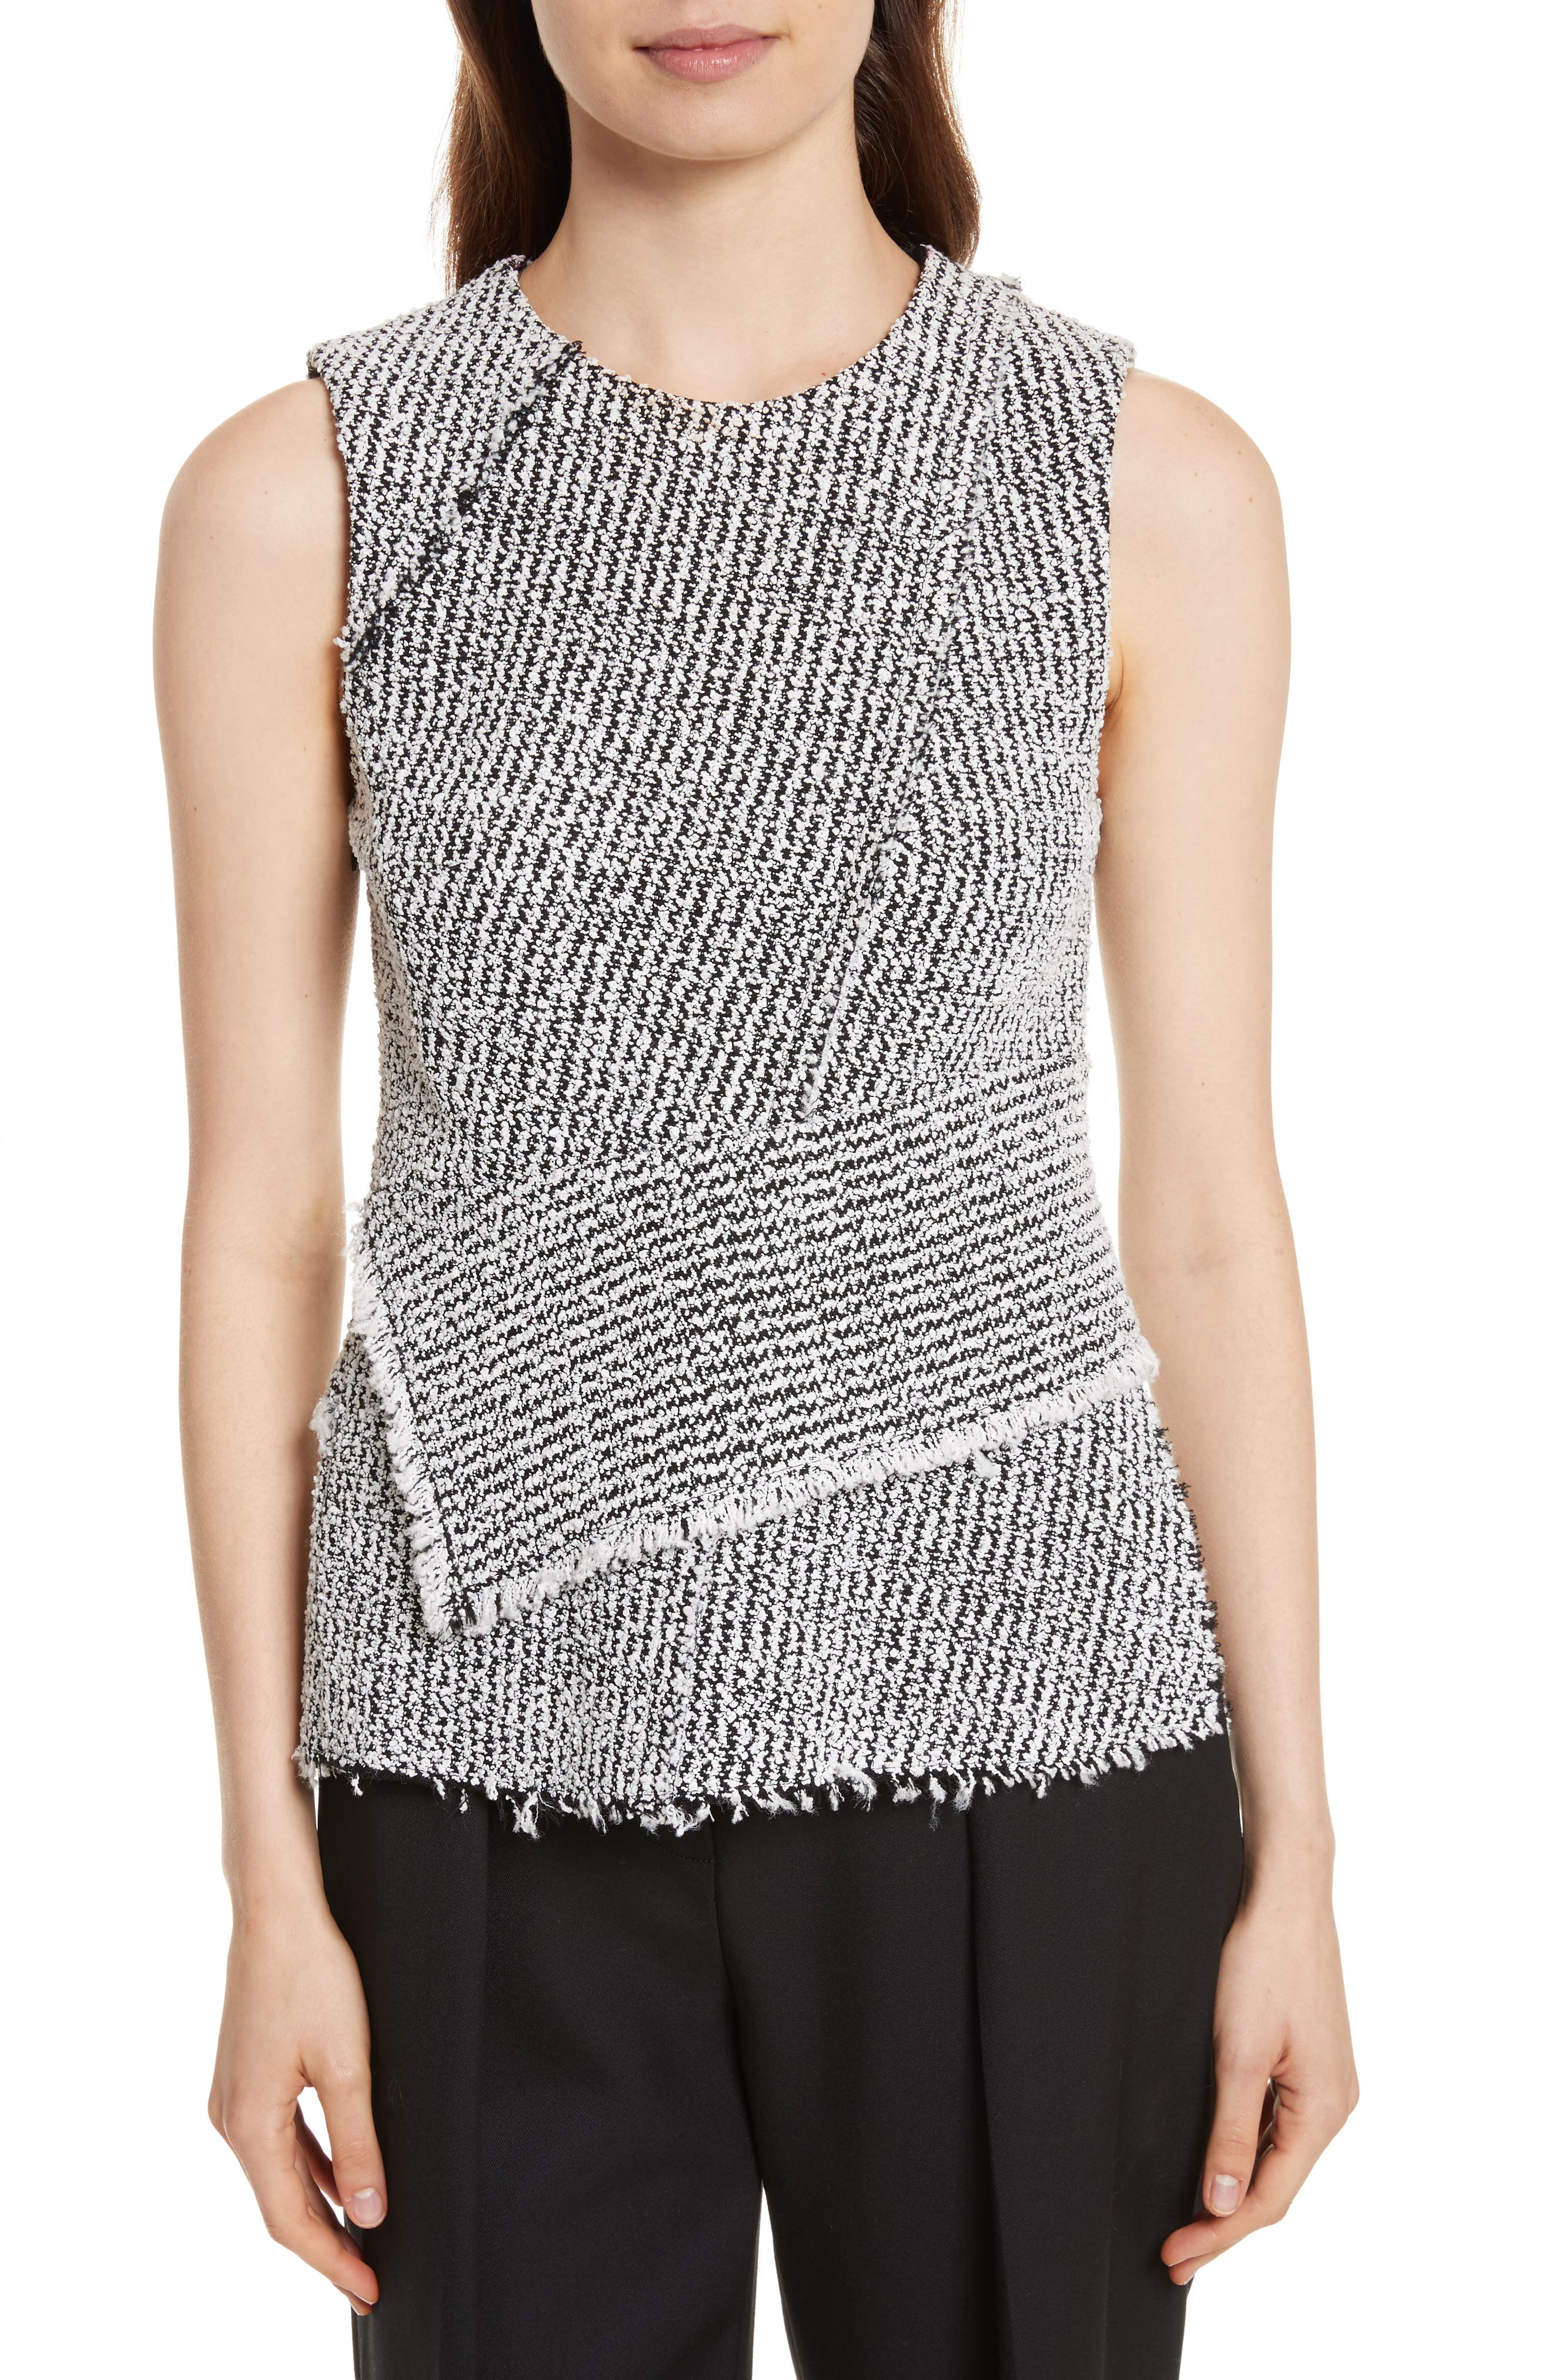 Alternate Image 1 Selected - 3.1 Phillip Lim Knit Wrap Top